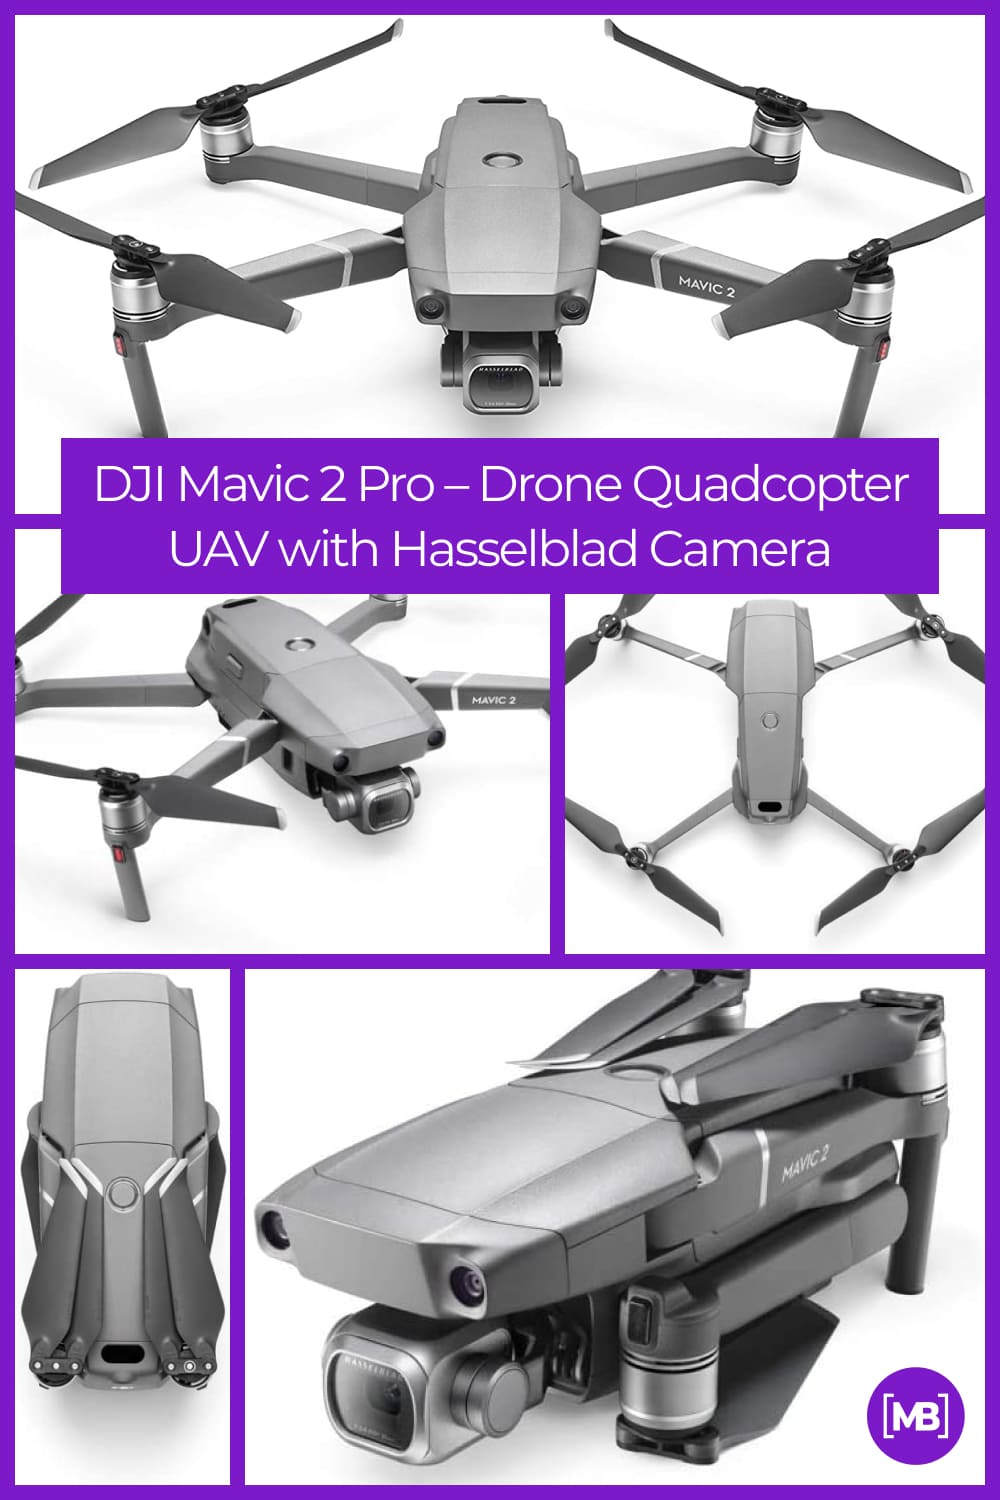 """Equipped with a Hasselblad L1D-20c camera with a 20MP 1"""" CMOS Sensor, the Mavic 2 camera drone lets you capture gorgeous aerial shots in stunning color detail."""